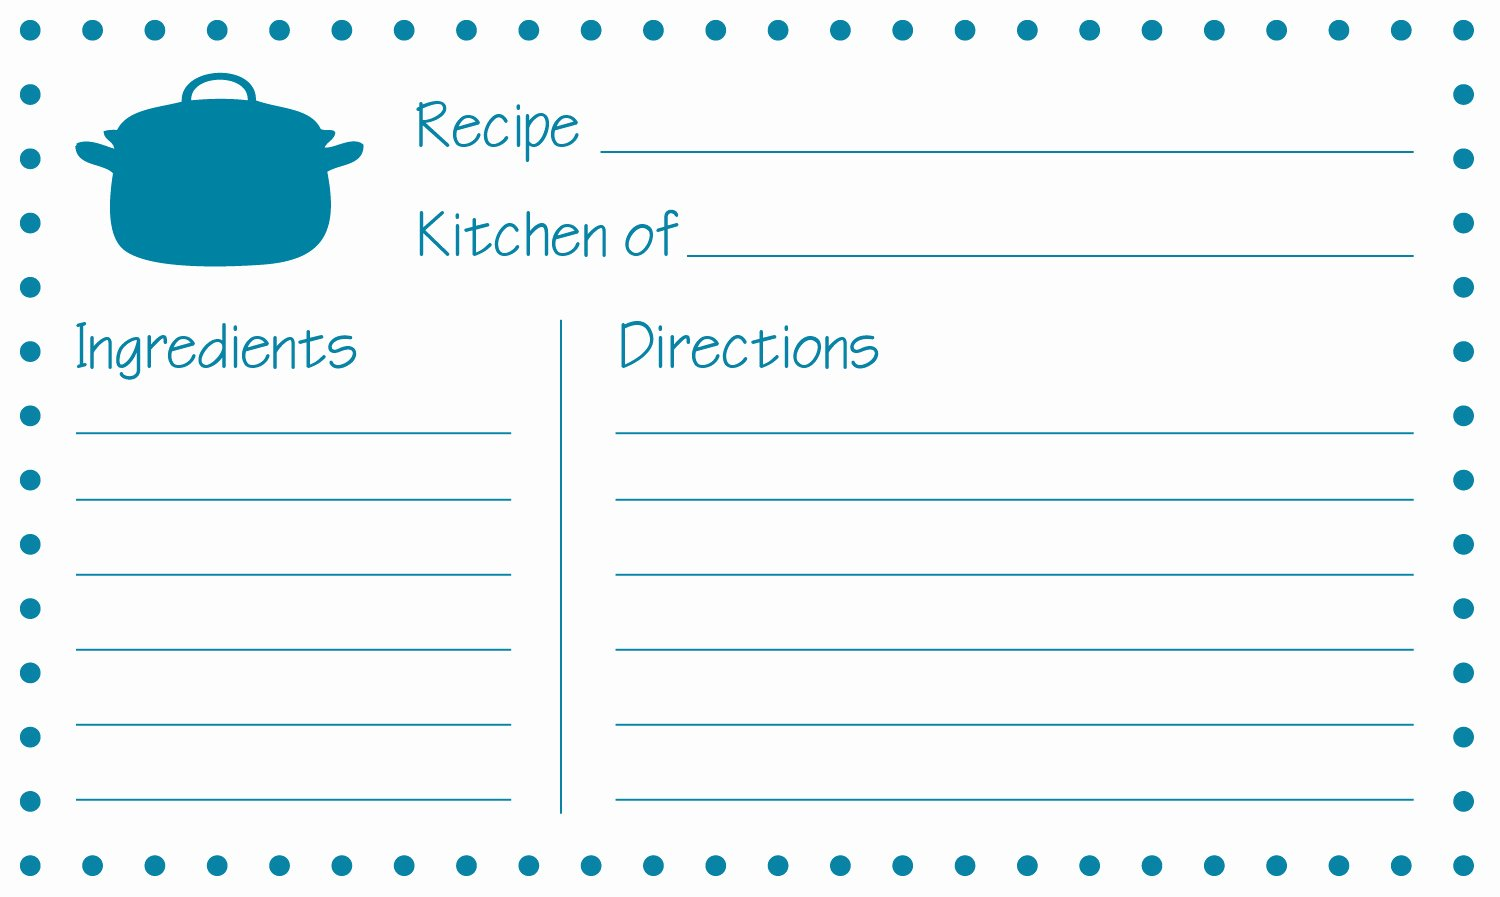 Direction Card Template Microsoft Word Fresh Free Printable Recipe Cards